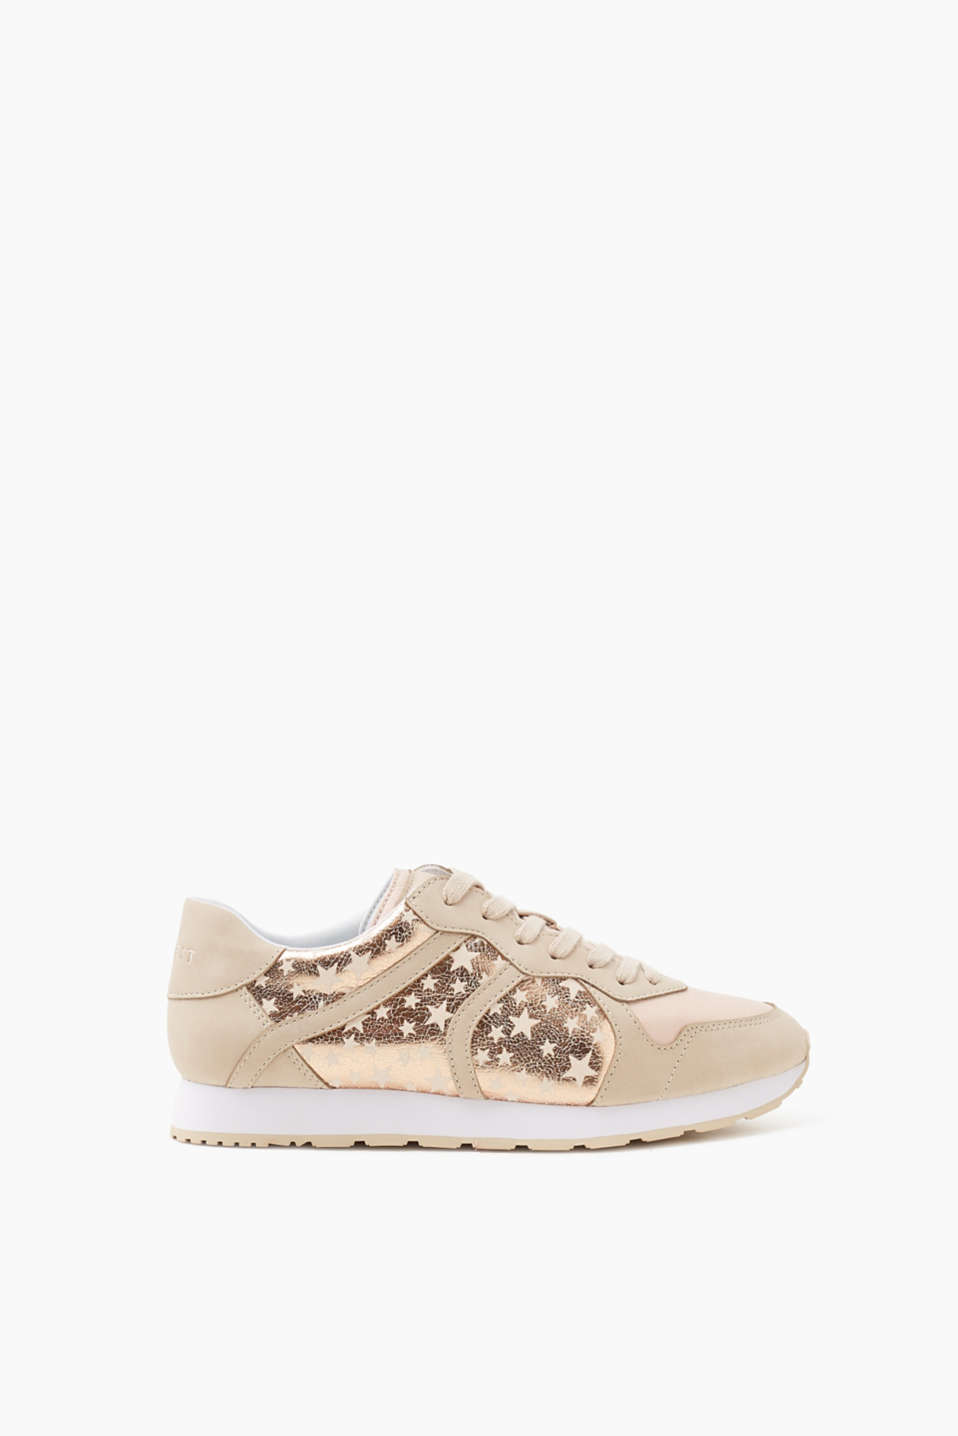 Esprit - Trendy trainers with a cool star print